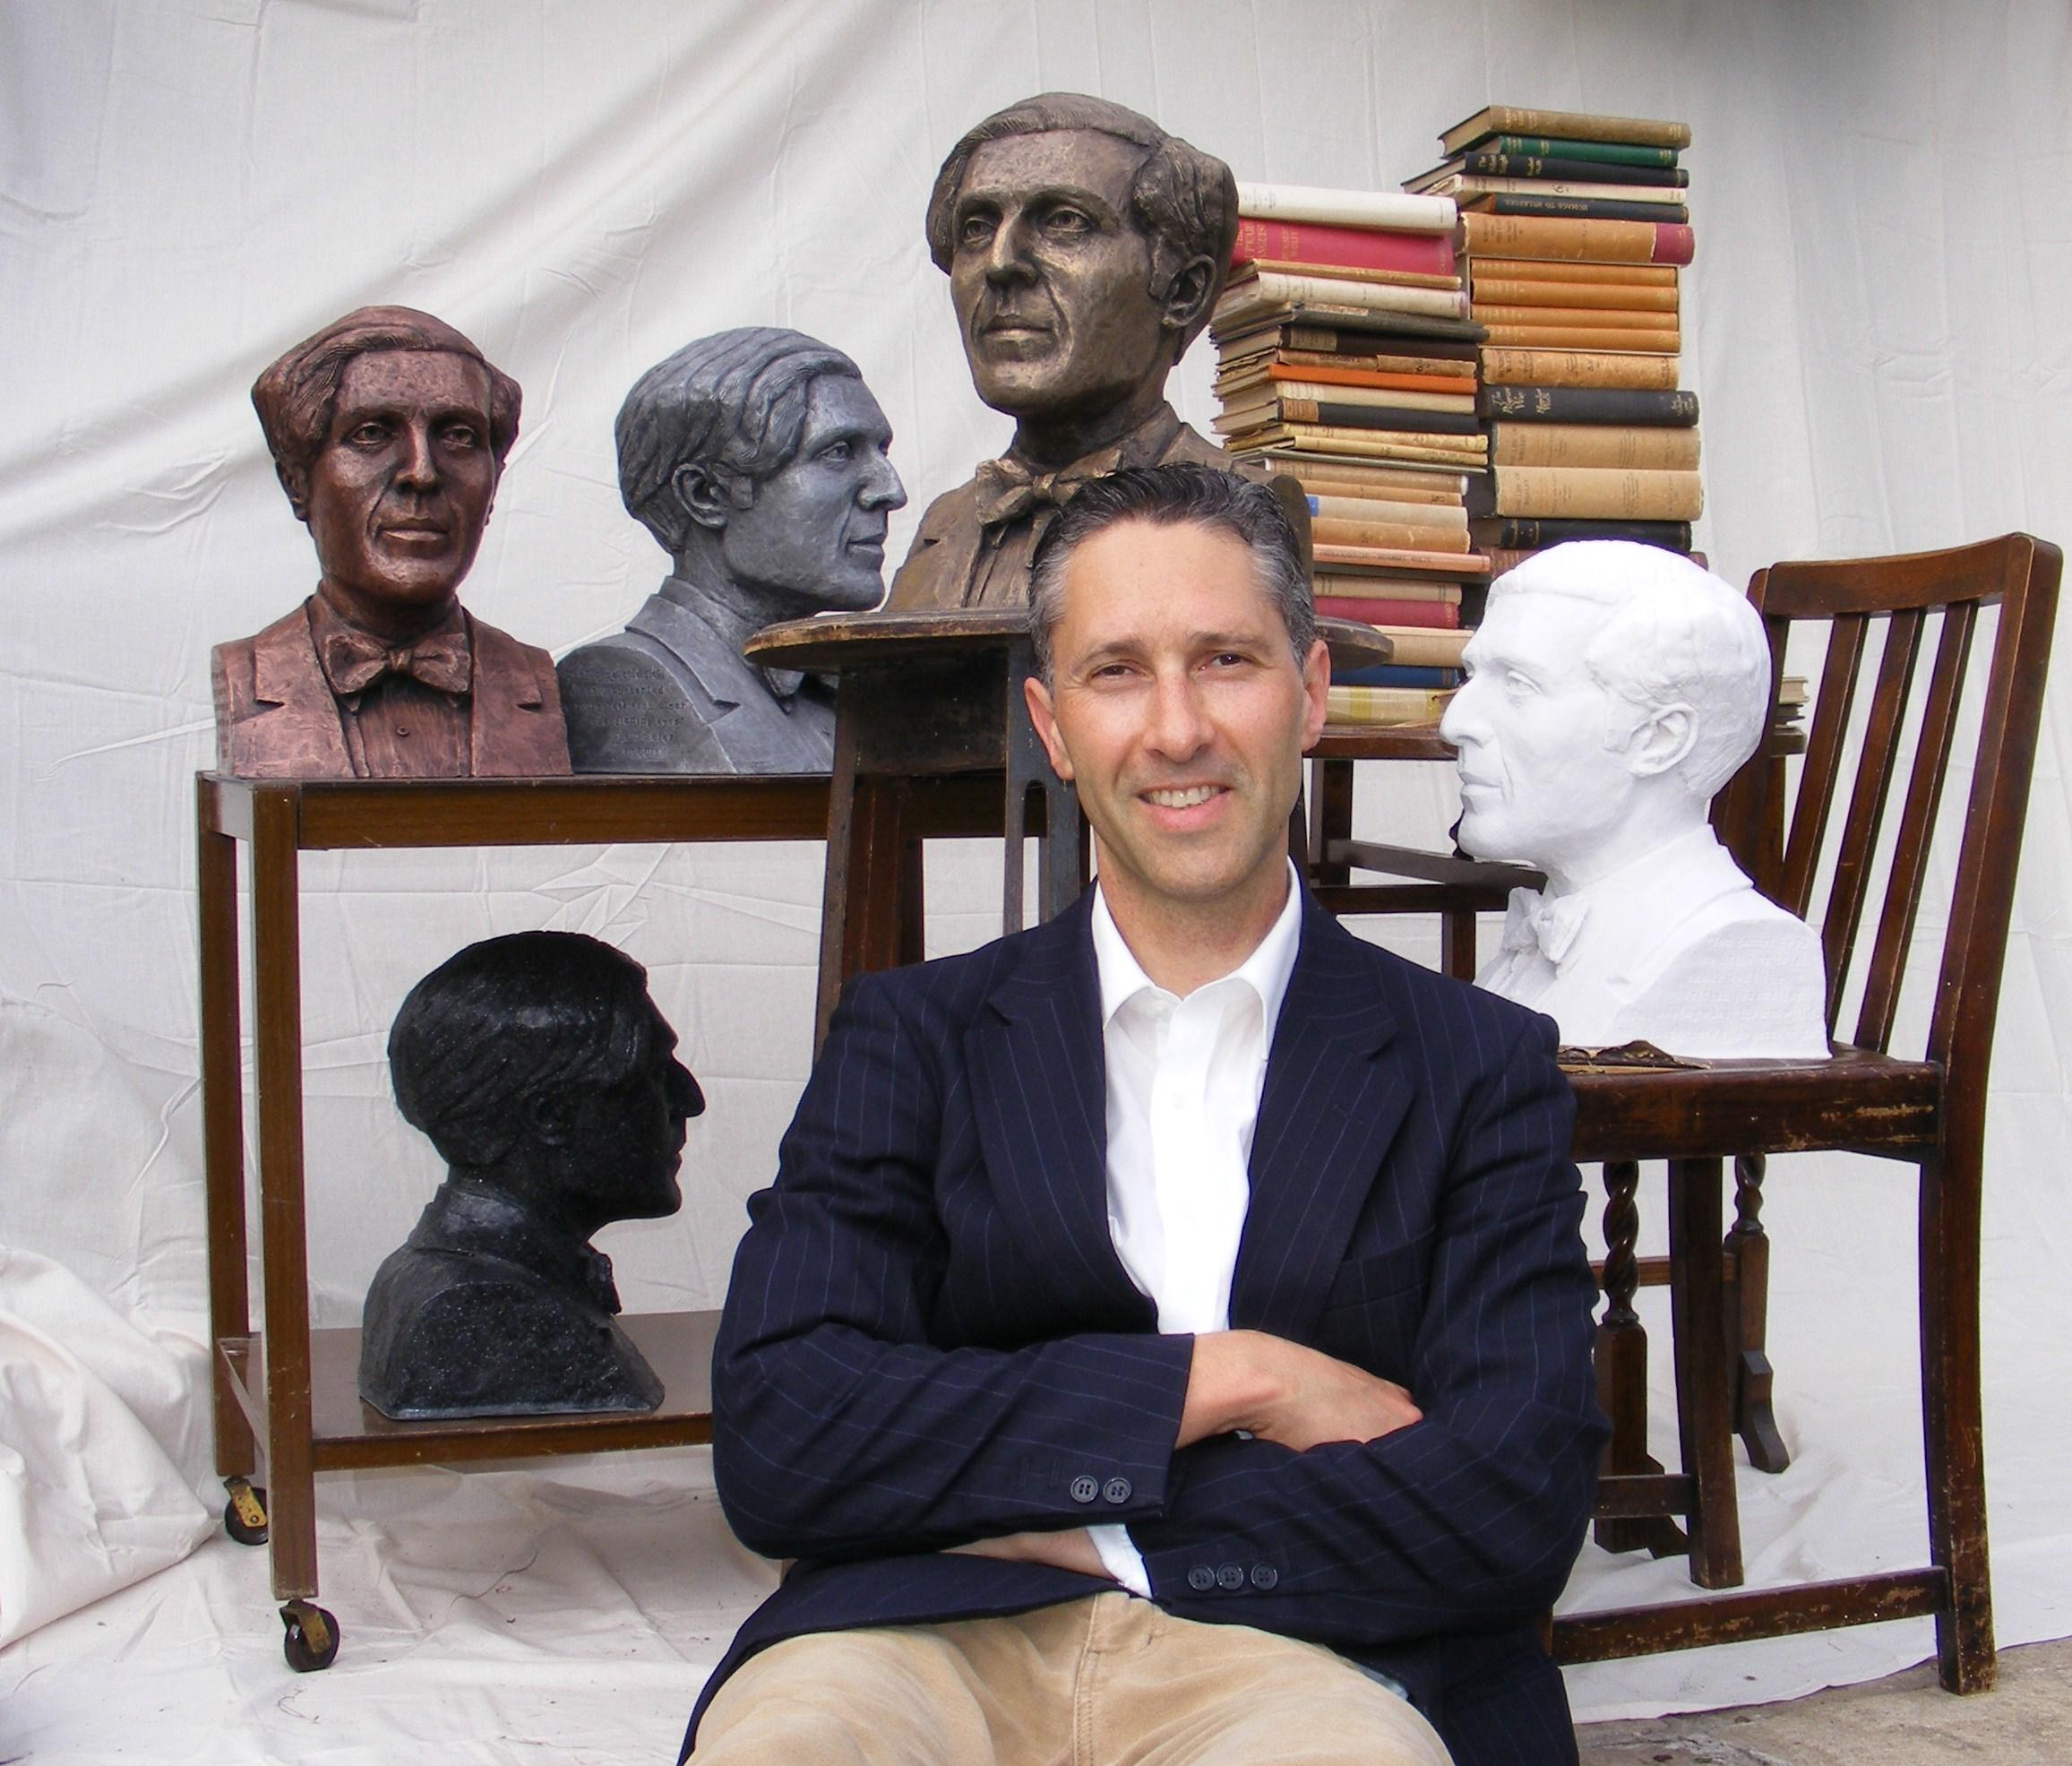 Humbert Wolfe's great-great nephew, sculptor Anthony Padgett, with his works depicting the Bradford-born First World War poet